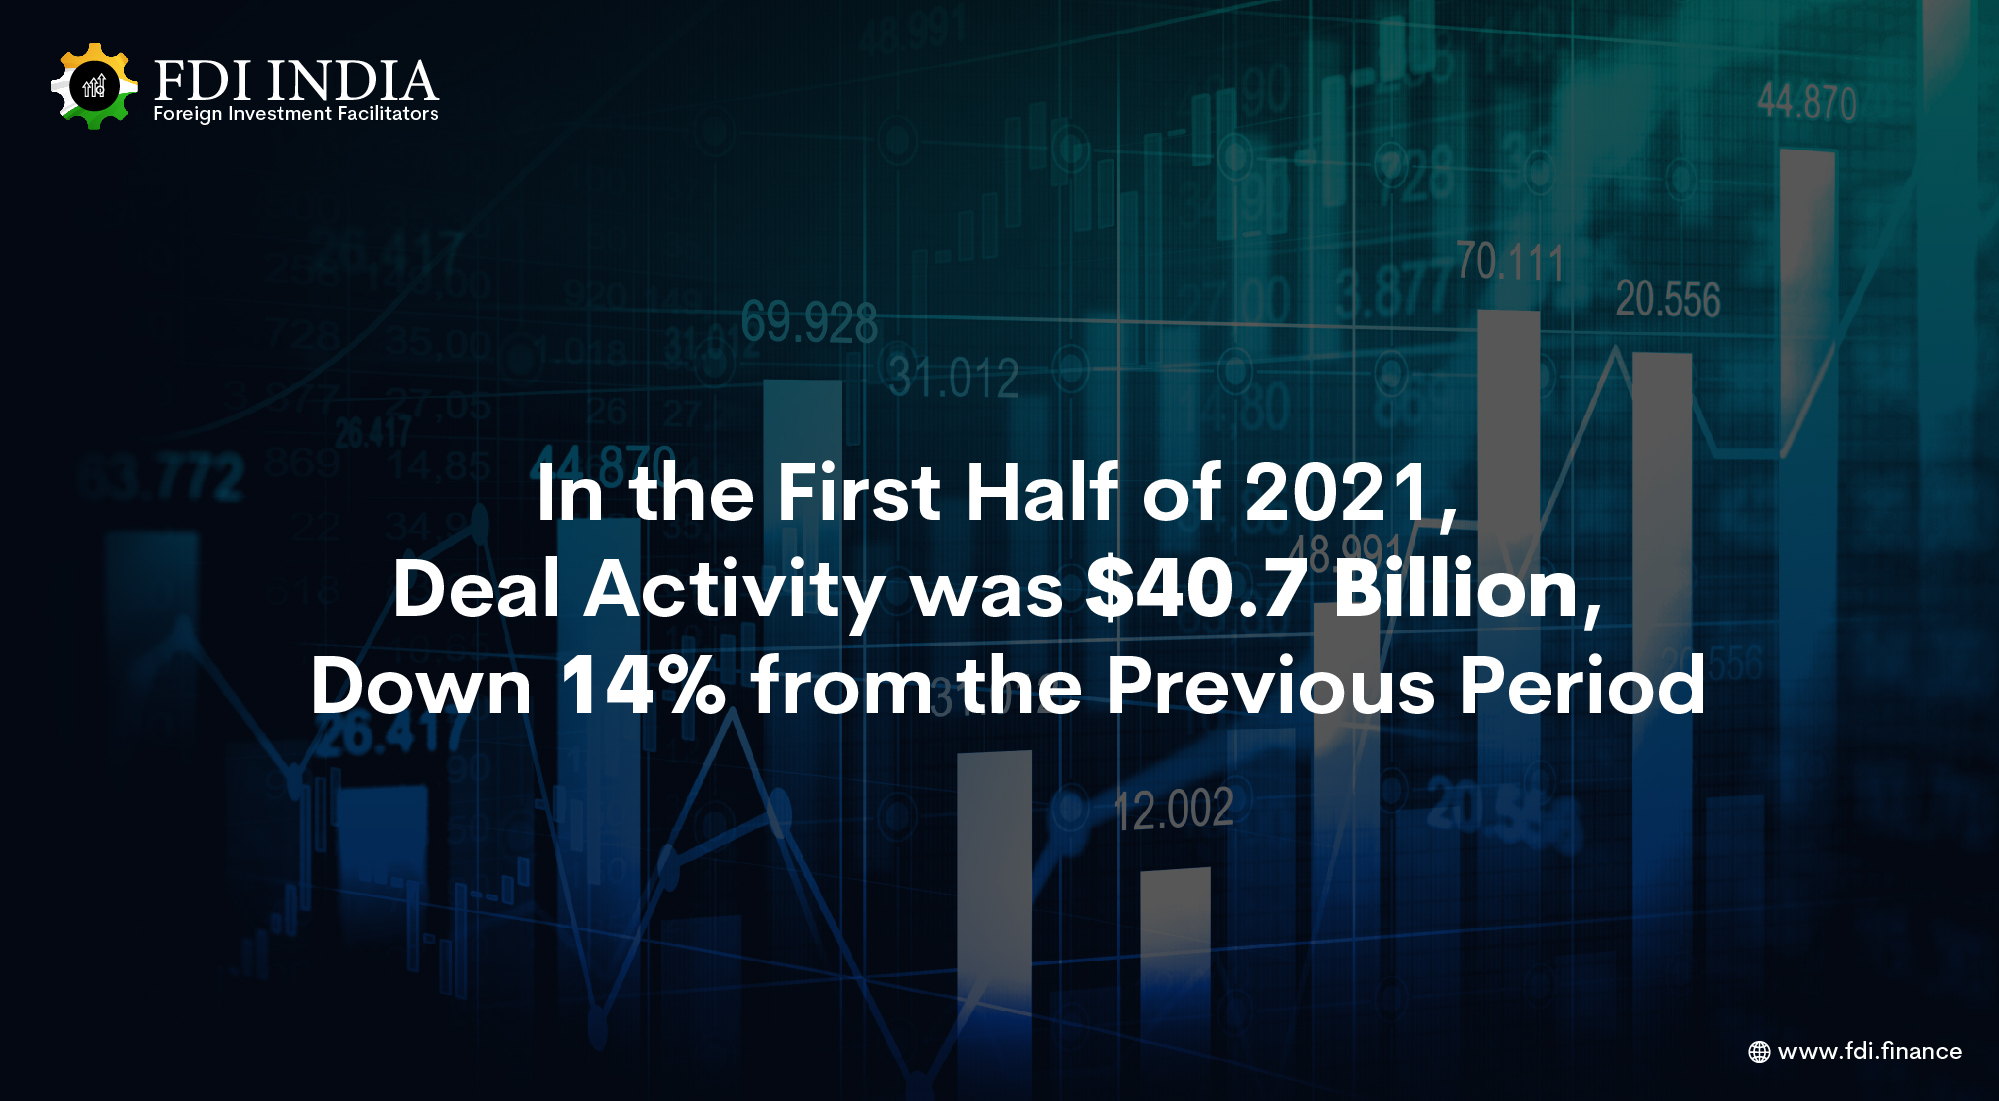 In the First Half of 2021, Deal Activity Was $40.7 Billion, Down 14% From the Previous Period